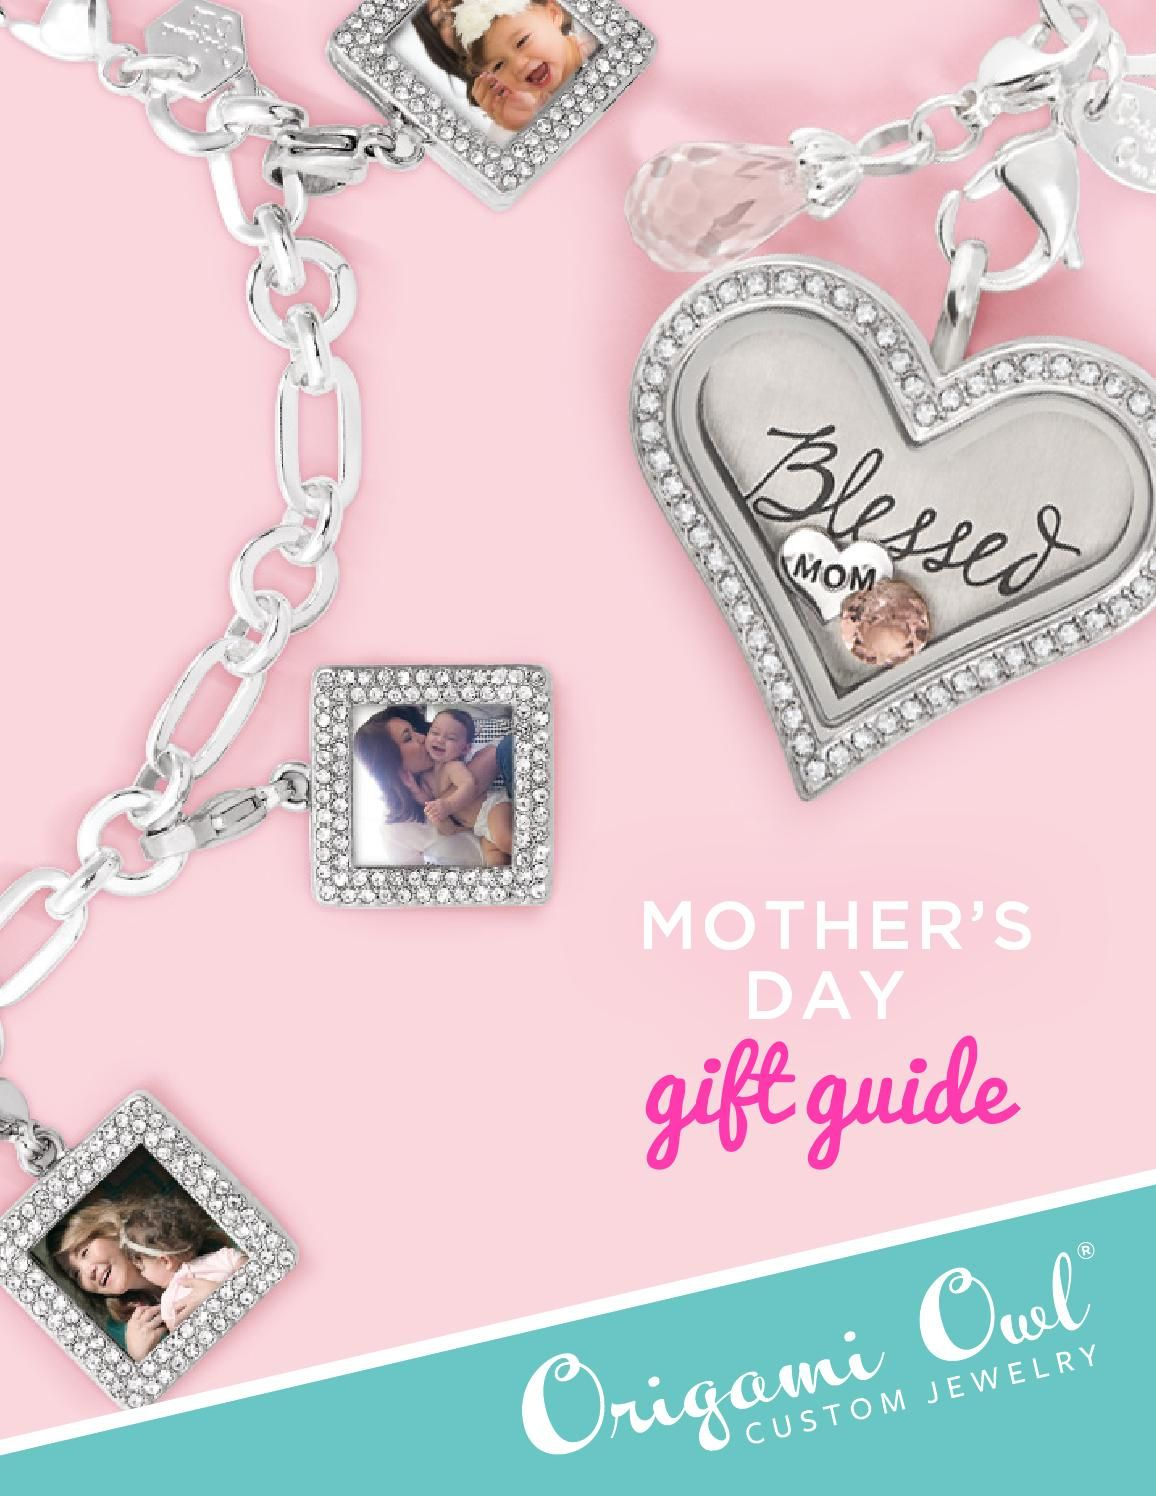 Pin by Nannette French on Origami Owl | Origami owl ... - photo#34